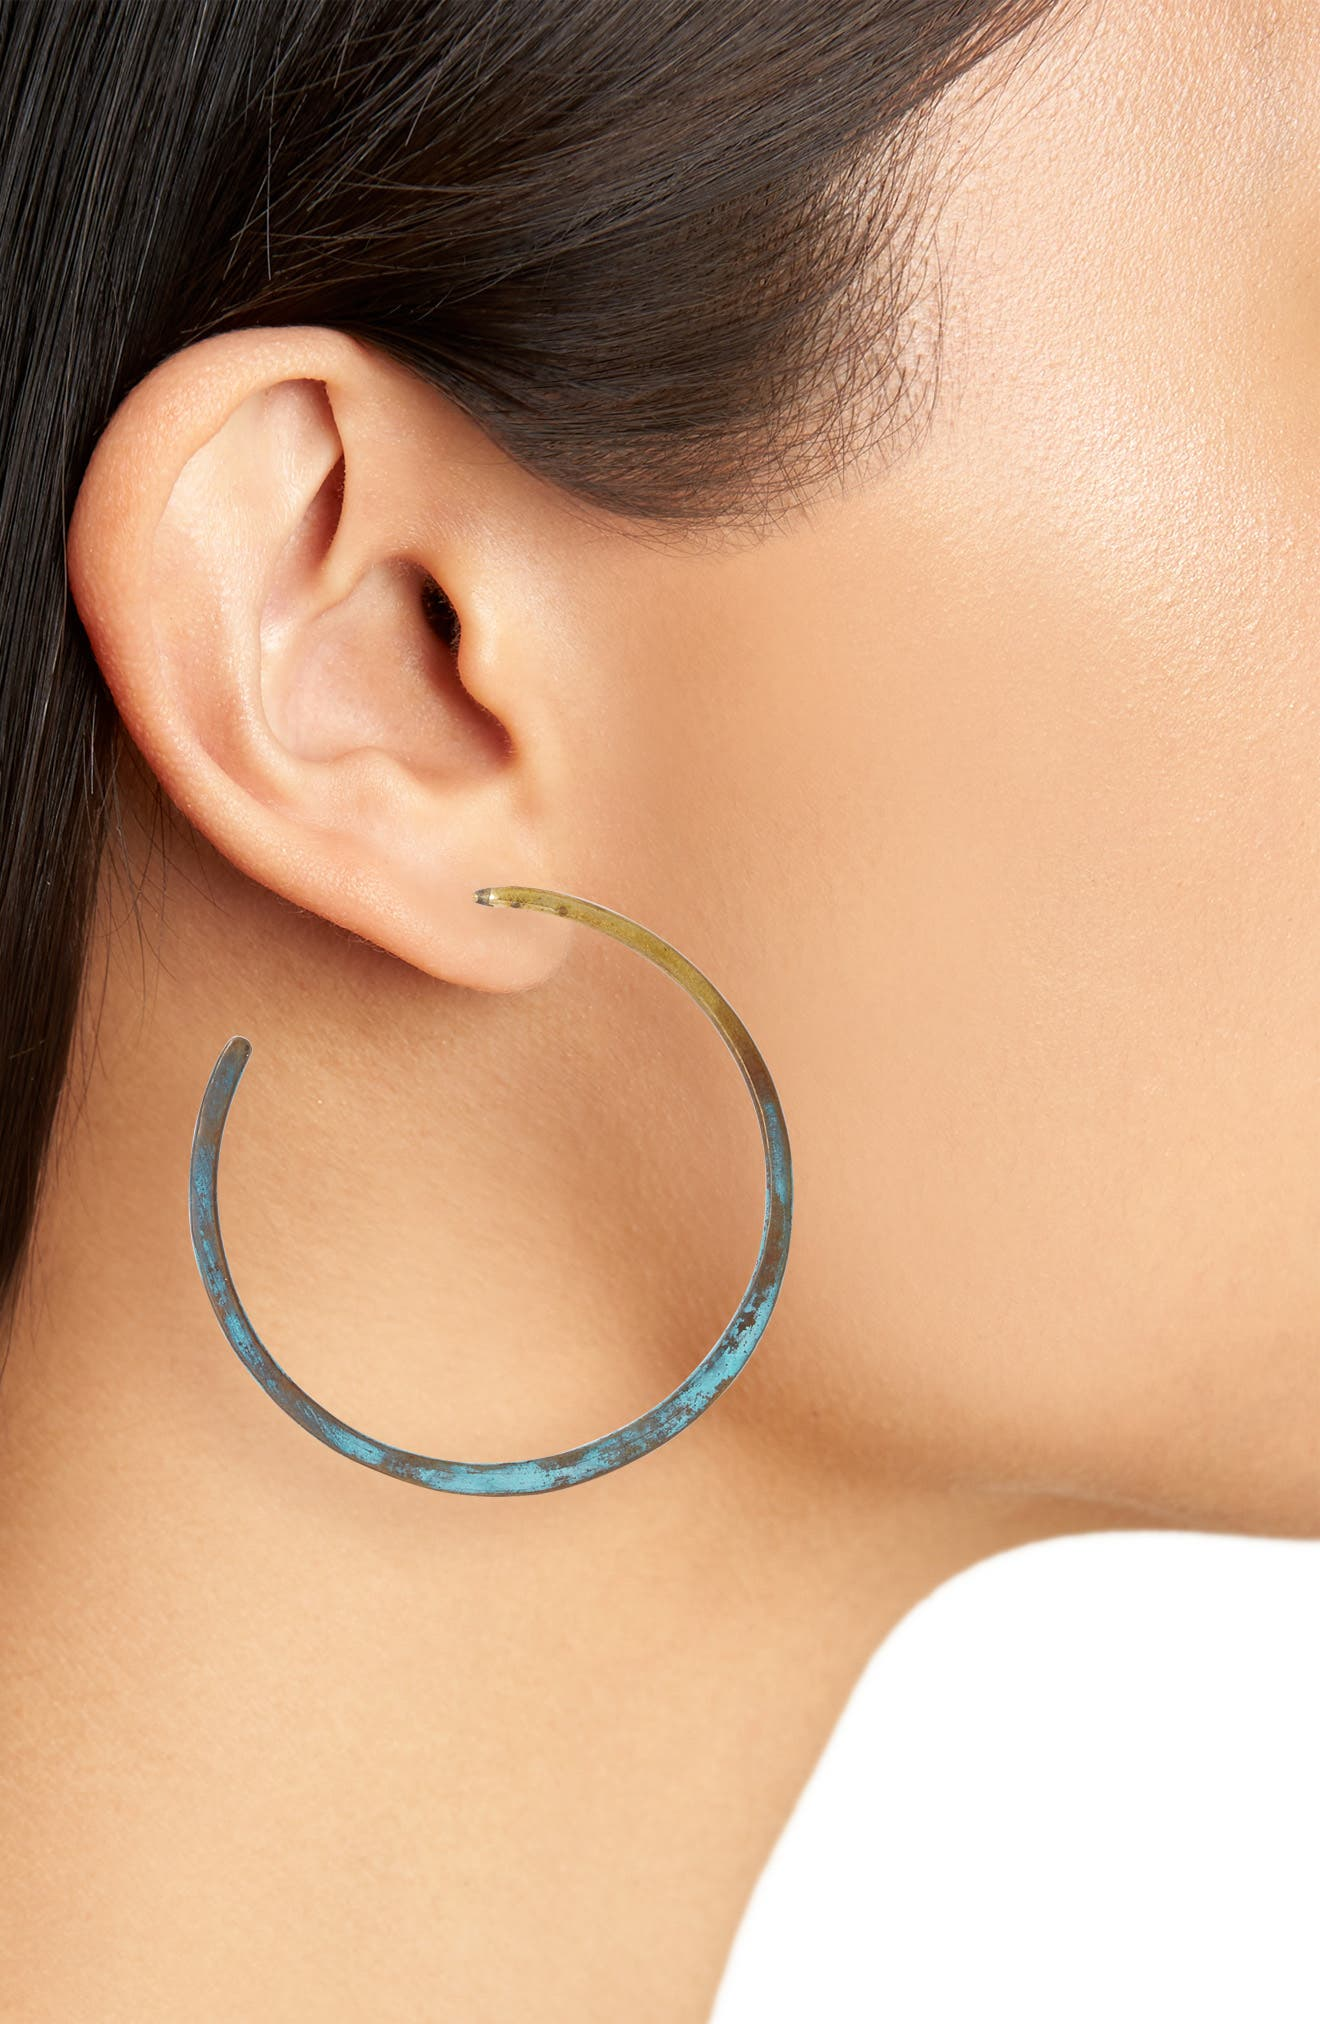 Patina Hoop Earrings,                             Alternate thumbnail 2, color,                             Dark Green